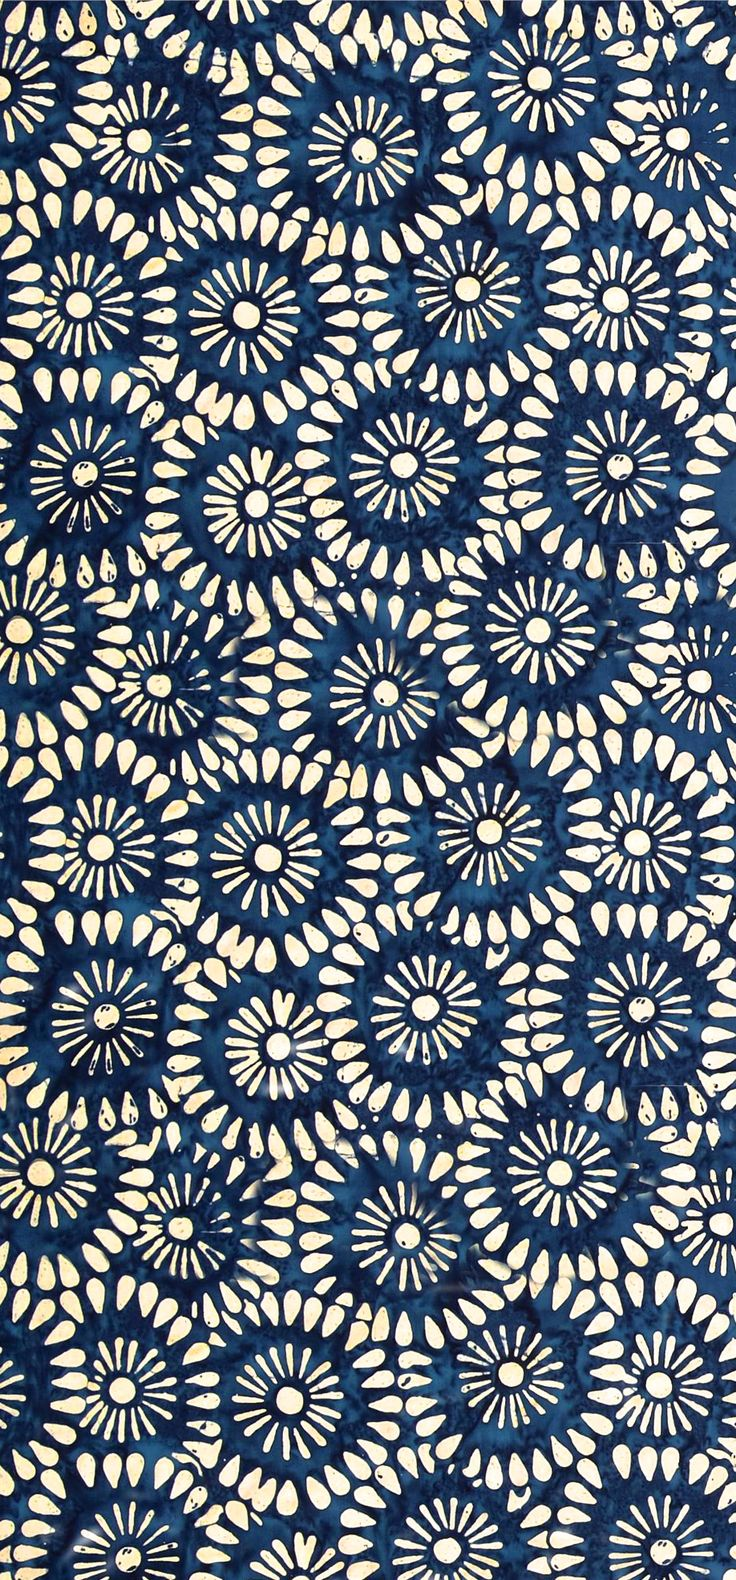 equilter,com.Blue Flowers, Batik Pattern, Block Prints, Repeat Pattern, Art, Design, Flower Patterns, Textile, Floral Pattern